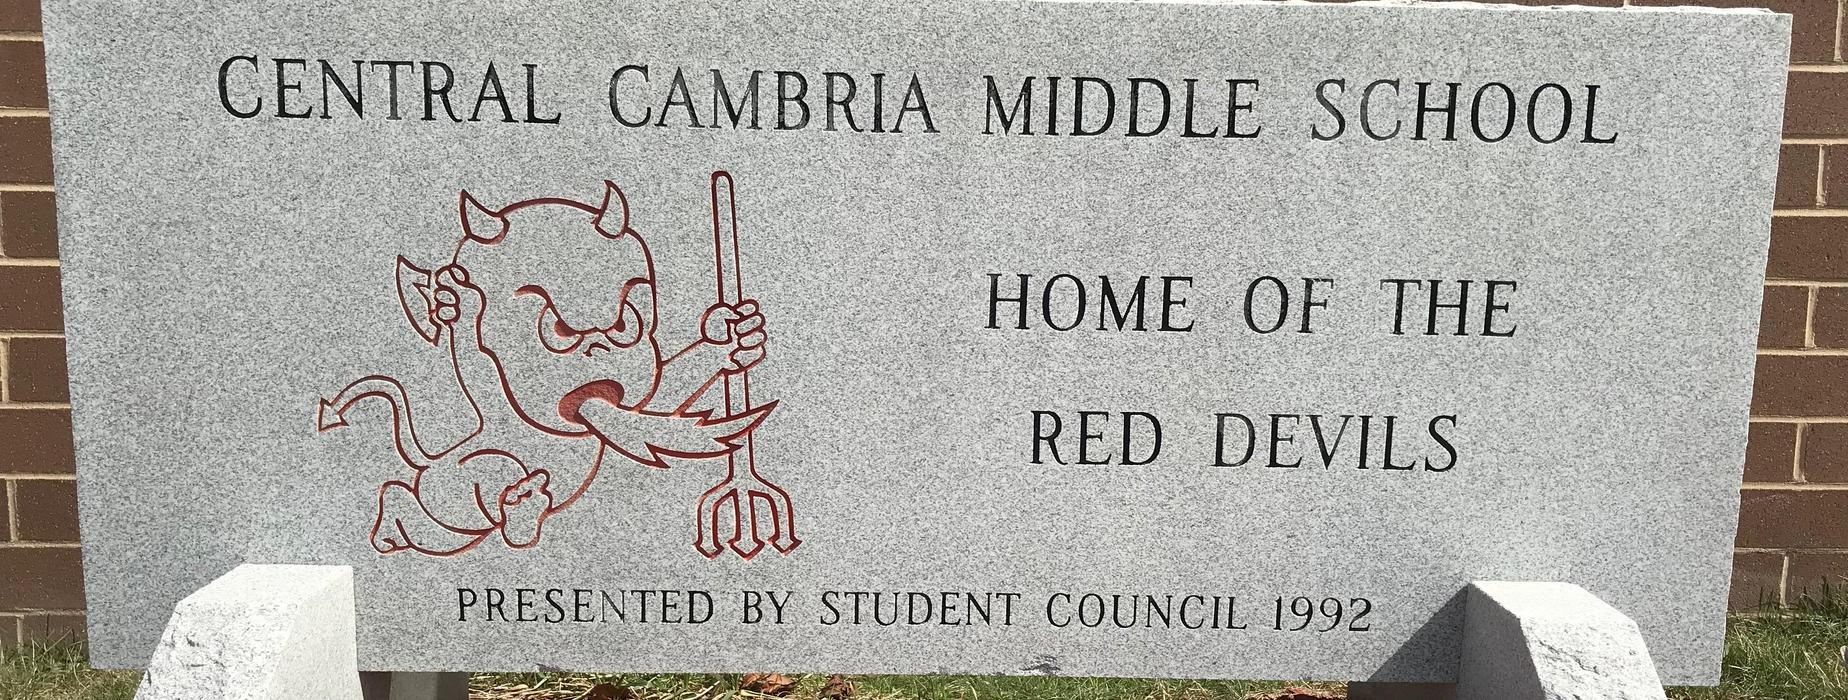 Central Cambria Middle School, Home of the Red Devils, Presented by Student Council 1992